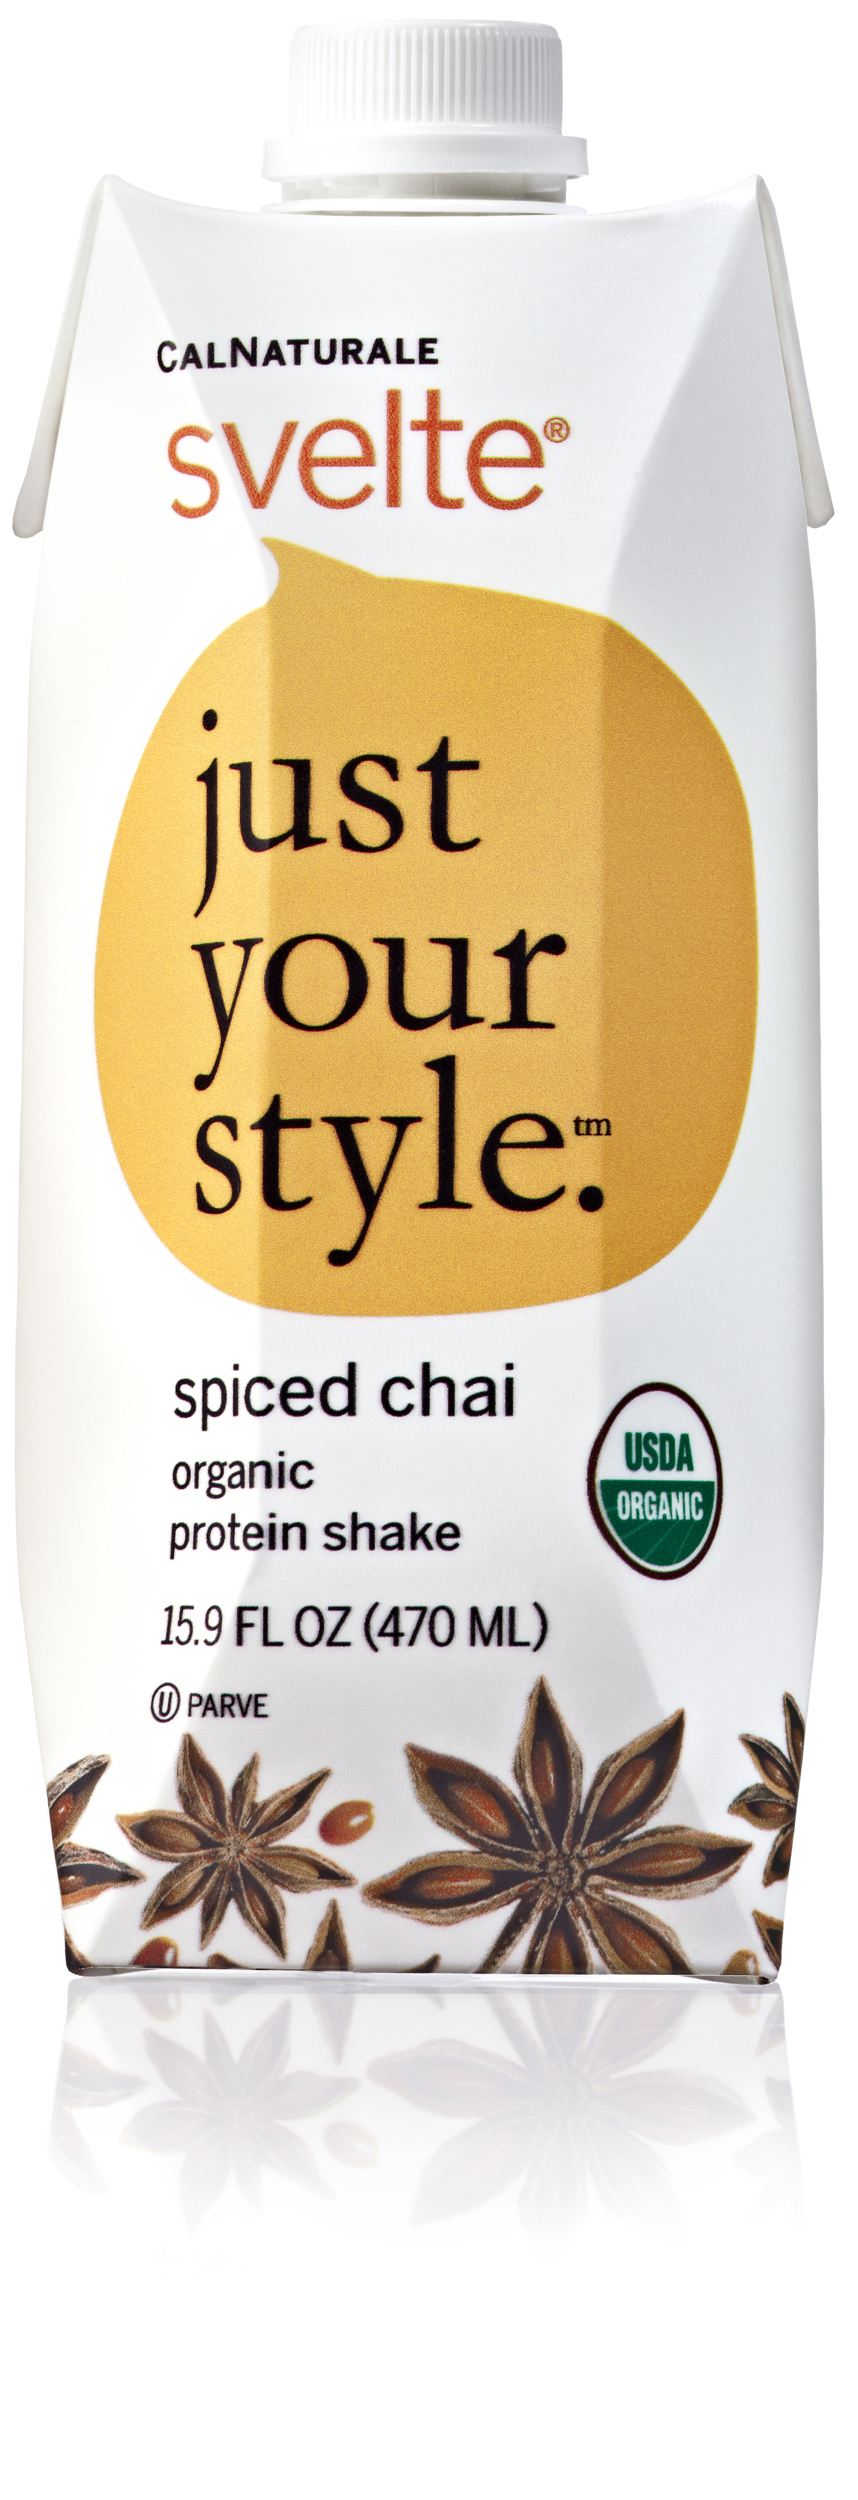 Svelte Protein Shake - Organic Spiced Chai - 15.9 oz - Case of 6: HF